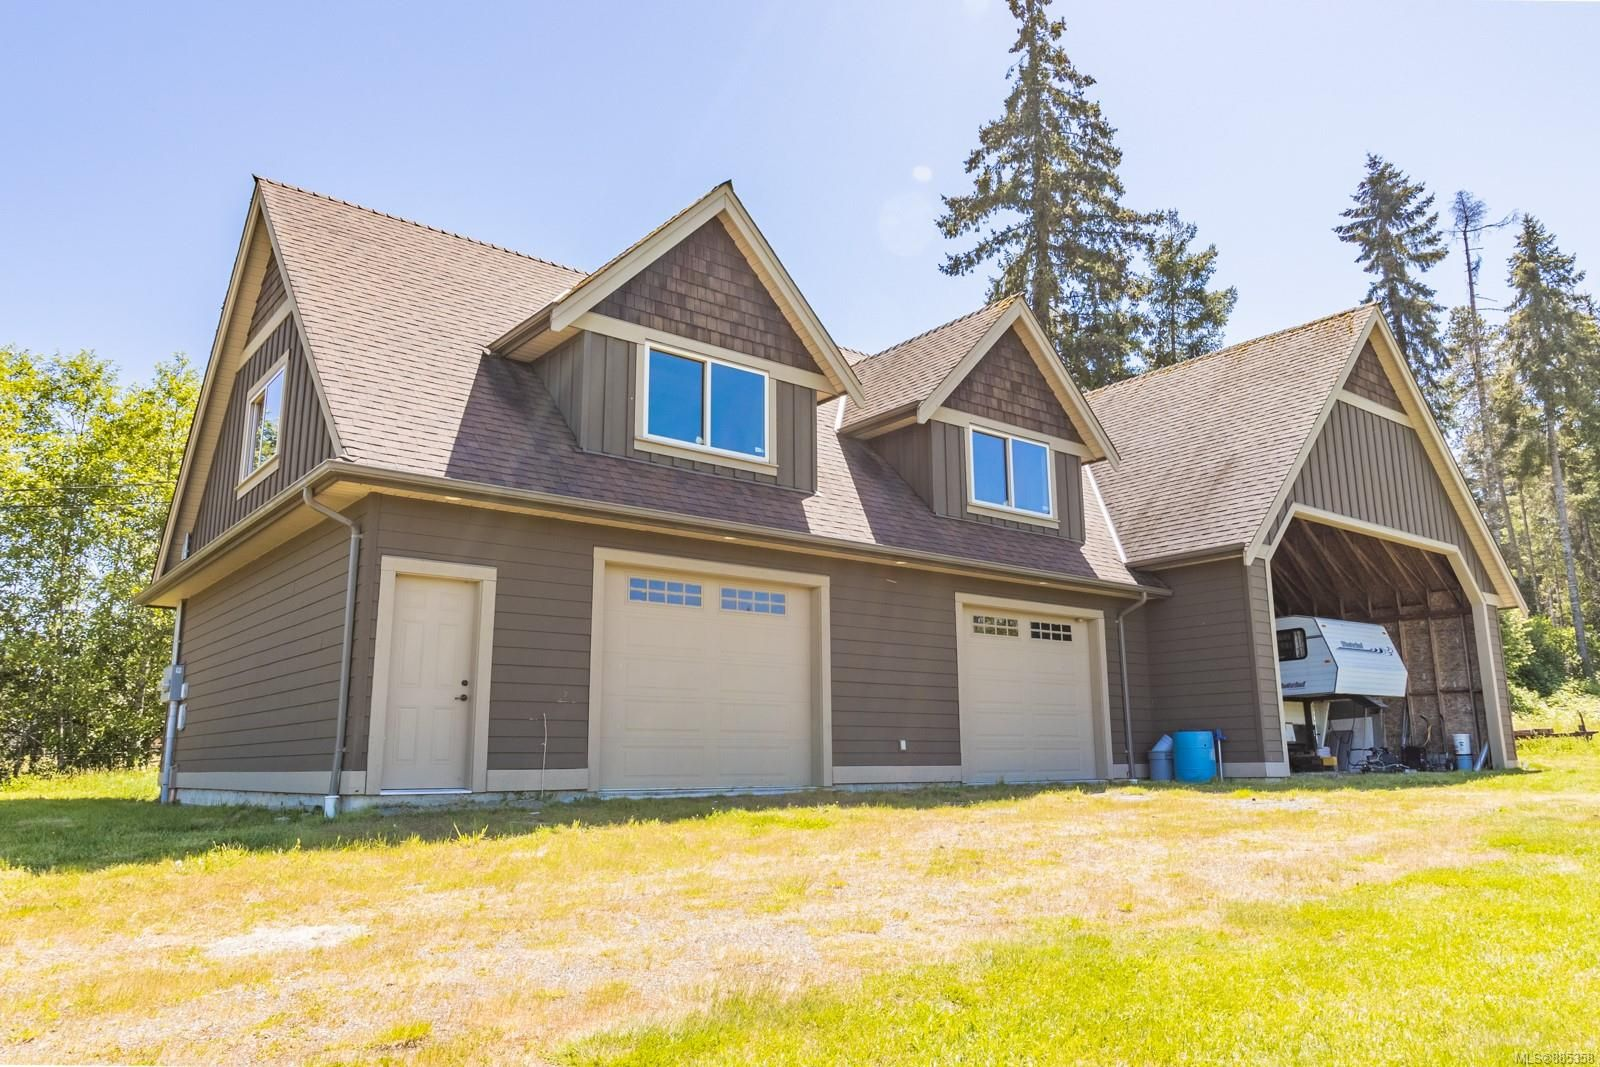 Photo 54: Photos: 2850 Peters Rd in : PQ Qualicum Beach House for sale (Parksville/Qualicum)  : MLS®# 885358